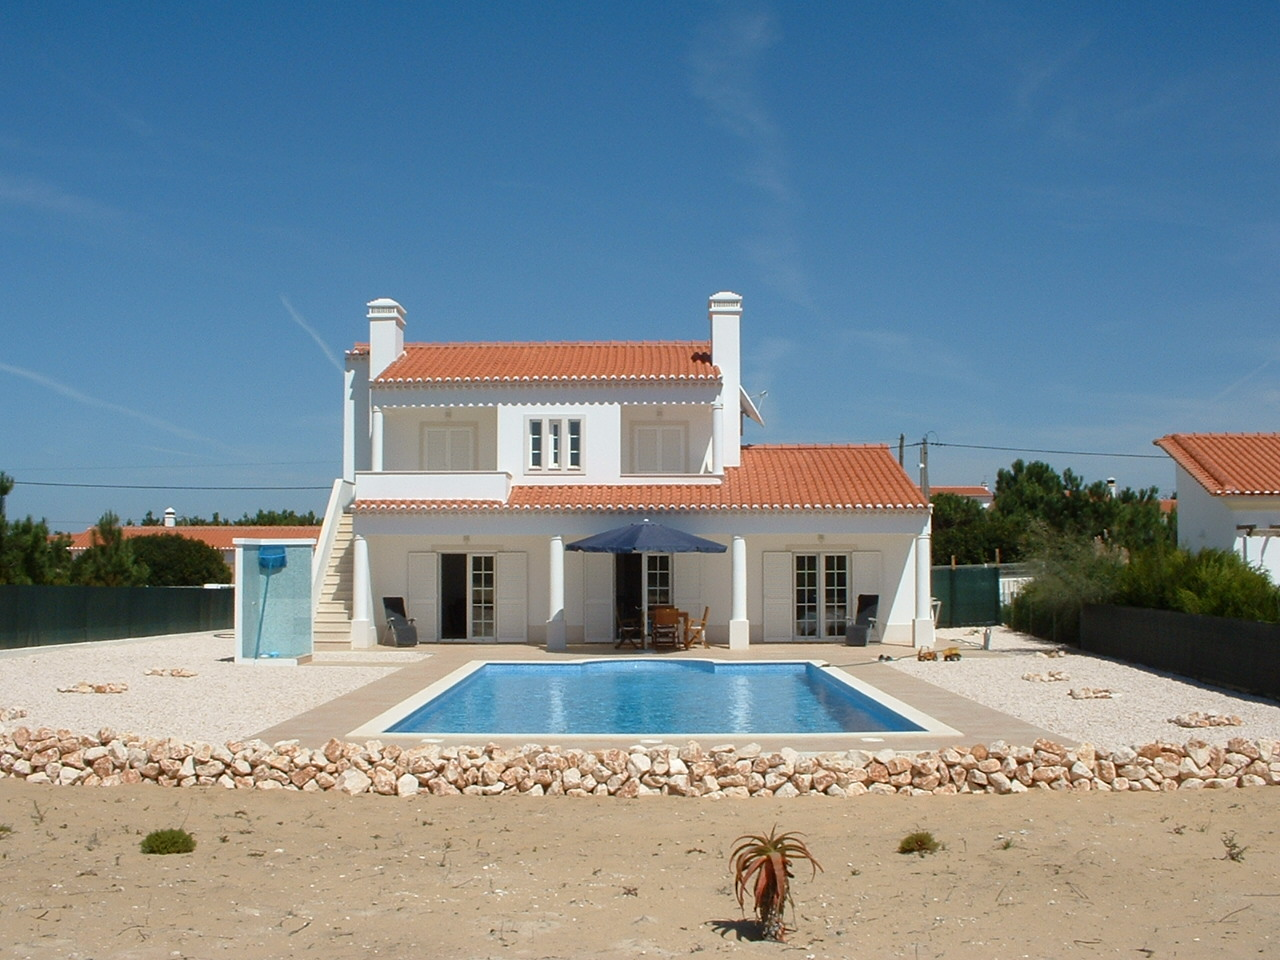 Property for sale: Vale Da Telha, Sector H, 4 bedrooms + apartment and  large pool